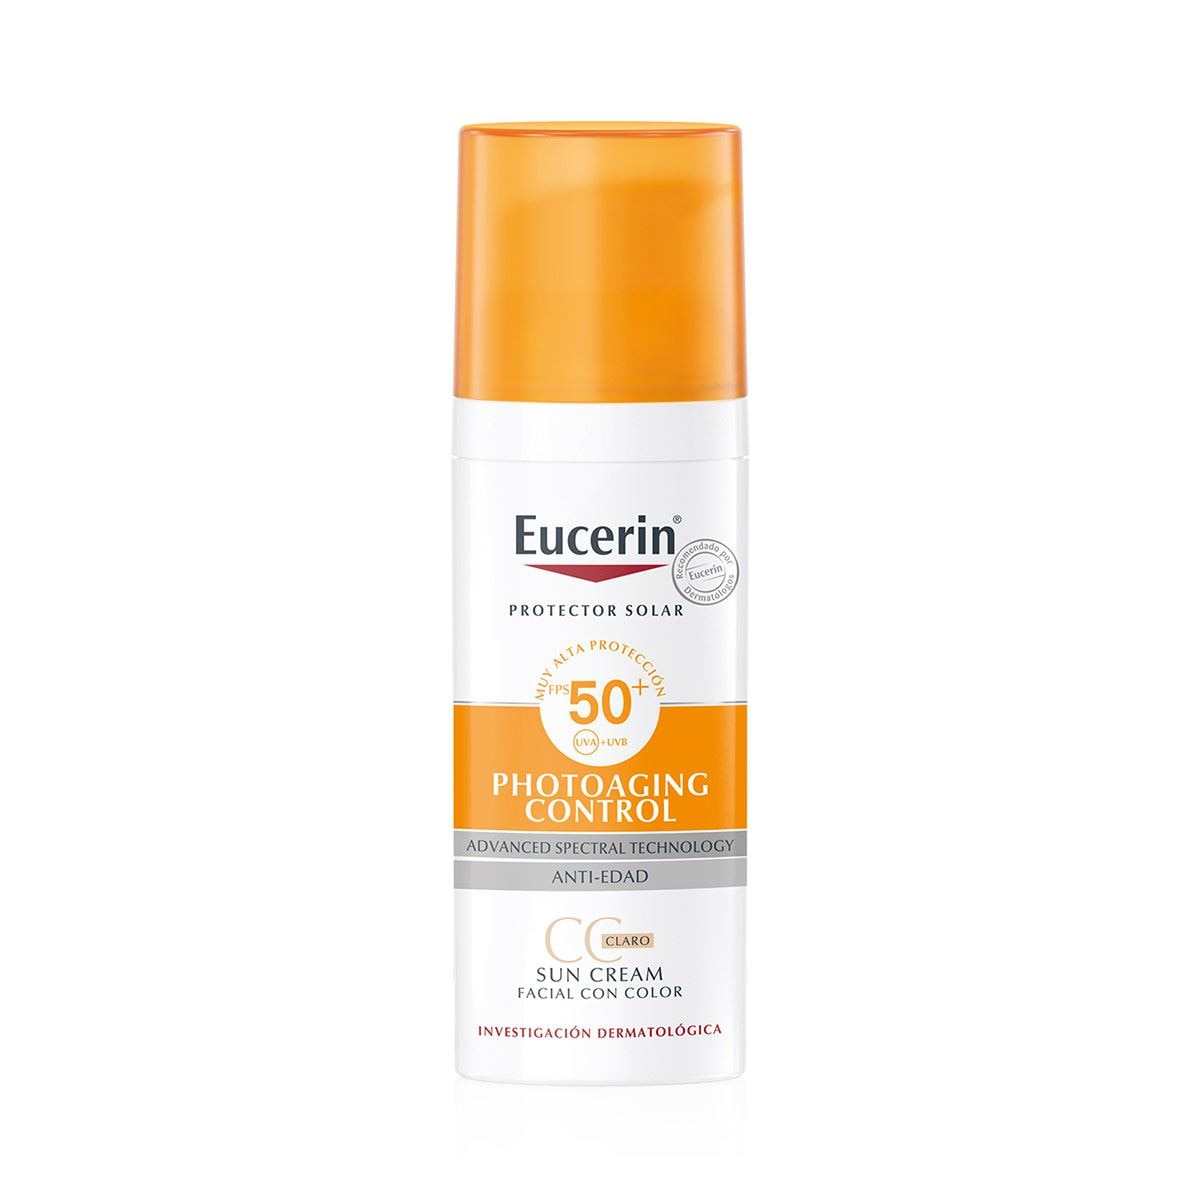 Eucerin  sun cc cream claro spf50+ 50ml  - Sanborns